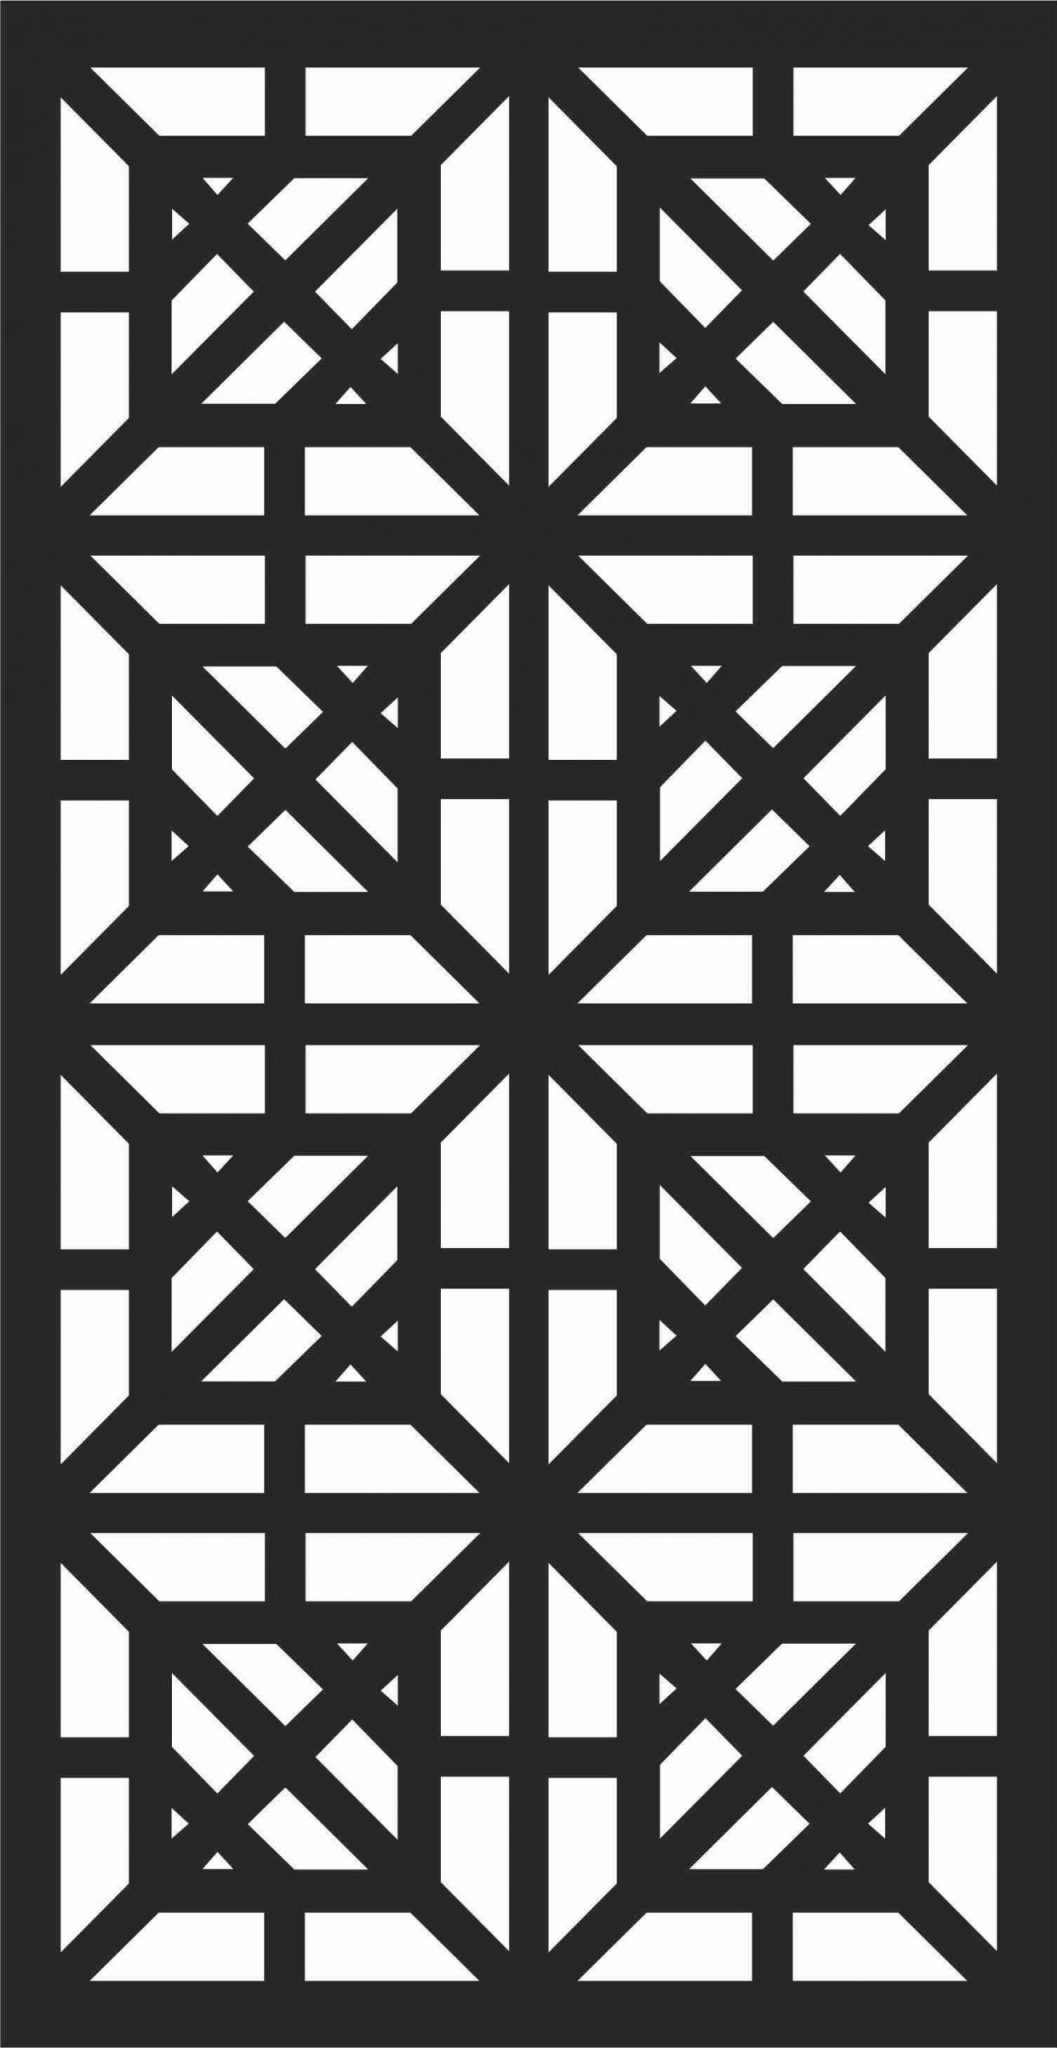 Decorative Screen Patterns For Laser Cutting 197 Free DXF File